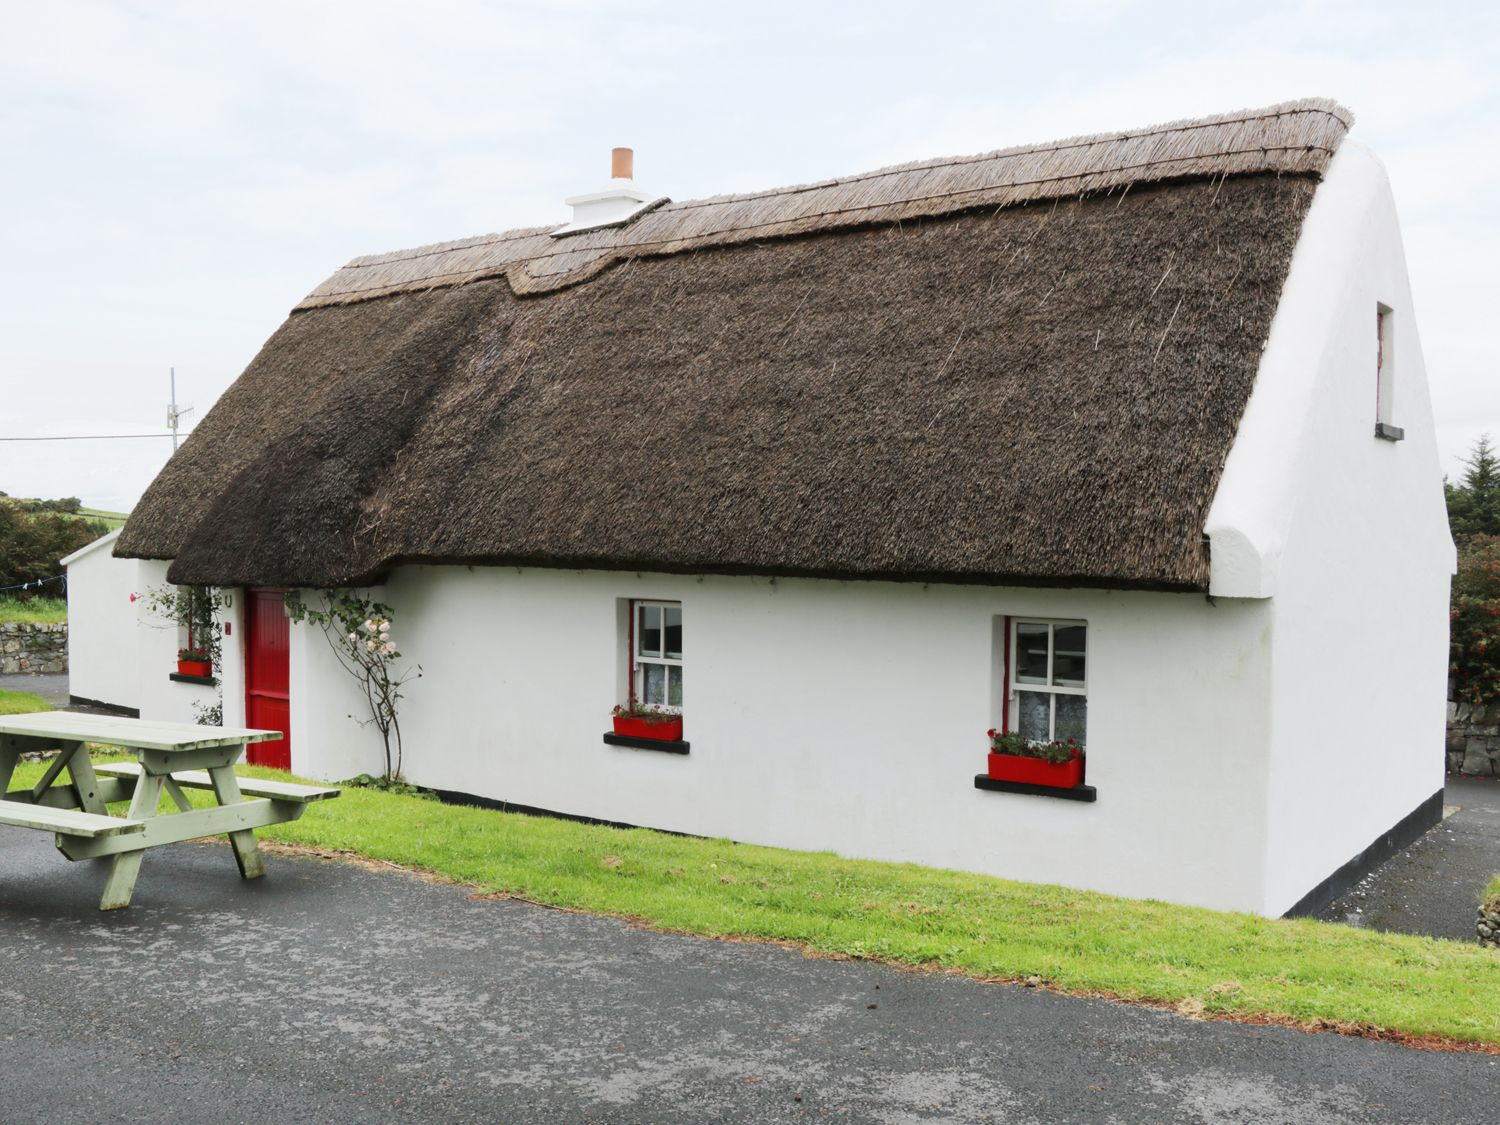 No 9 Renvyle Thatched Cottages - Shancroagh & County Galway - 986948 - photo 1